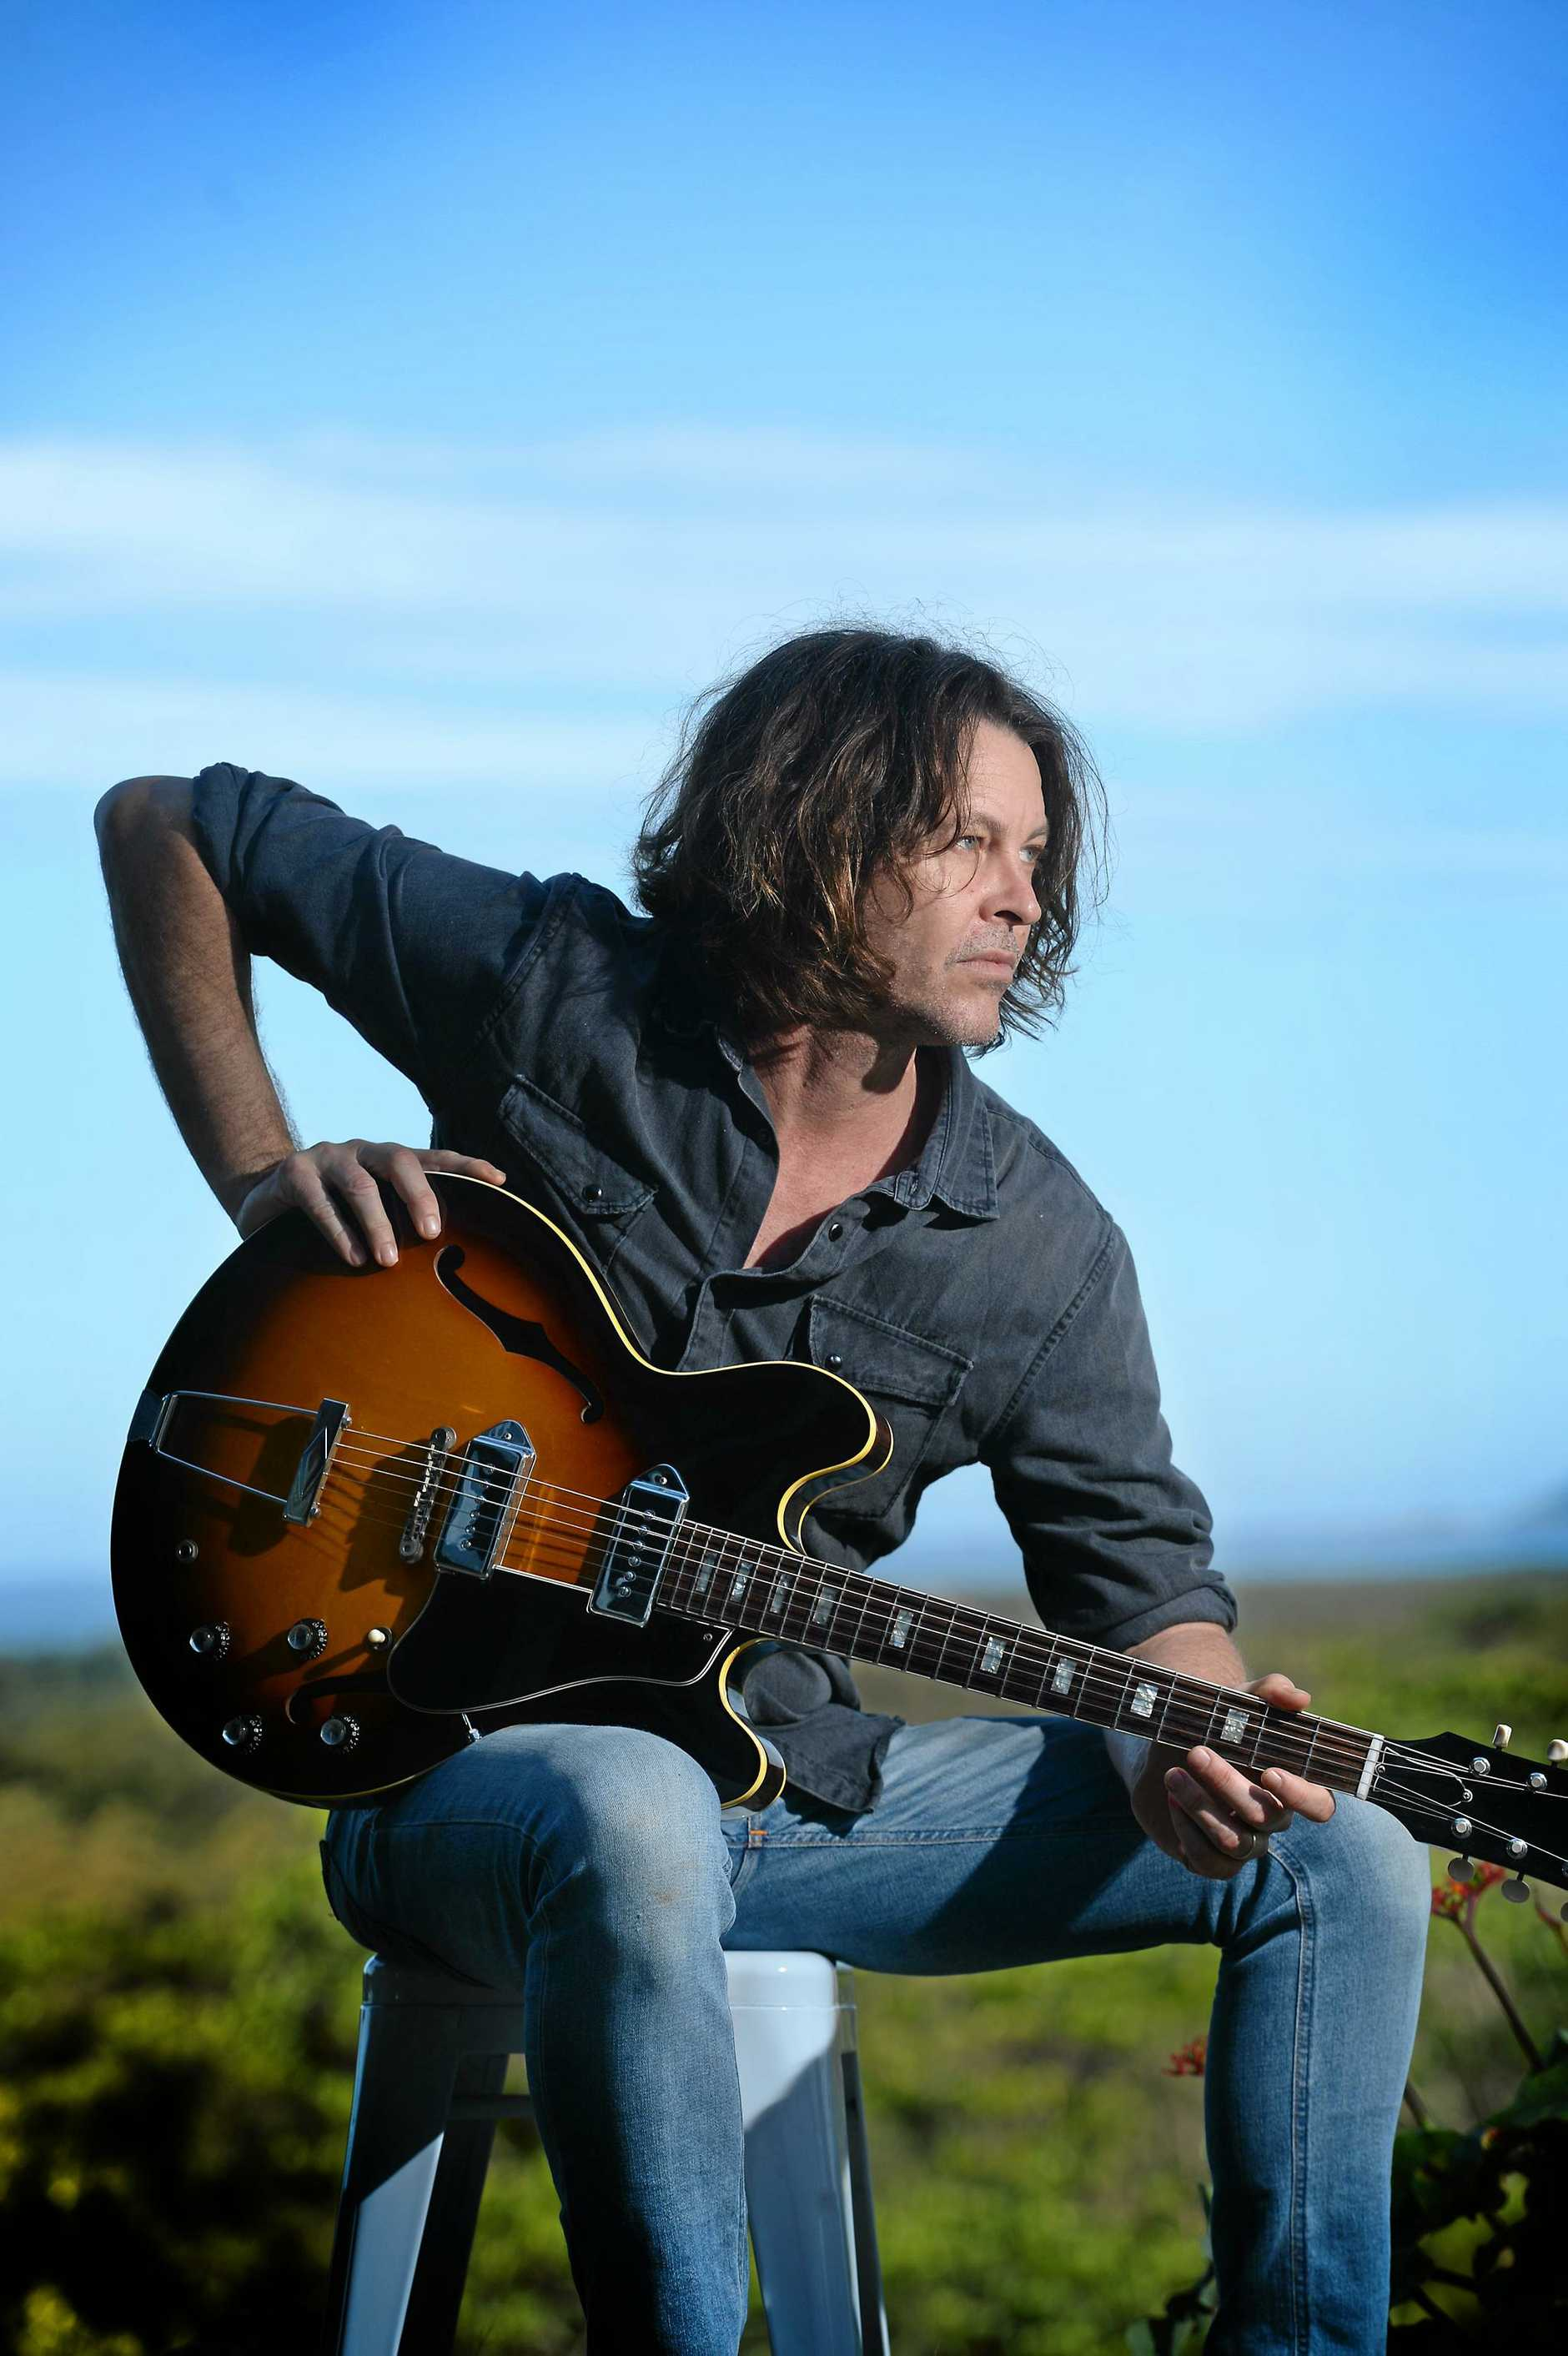 TWO ALBUMS: Brutal Dawn completes a two-album project between Bernard Fanning and local engineer Nick DiDia.